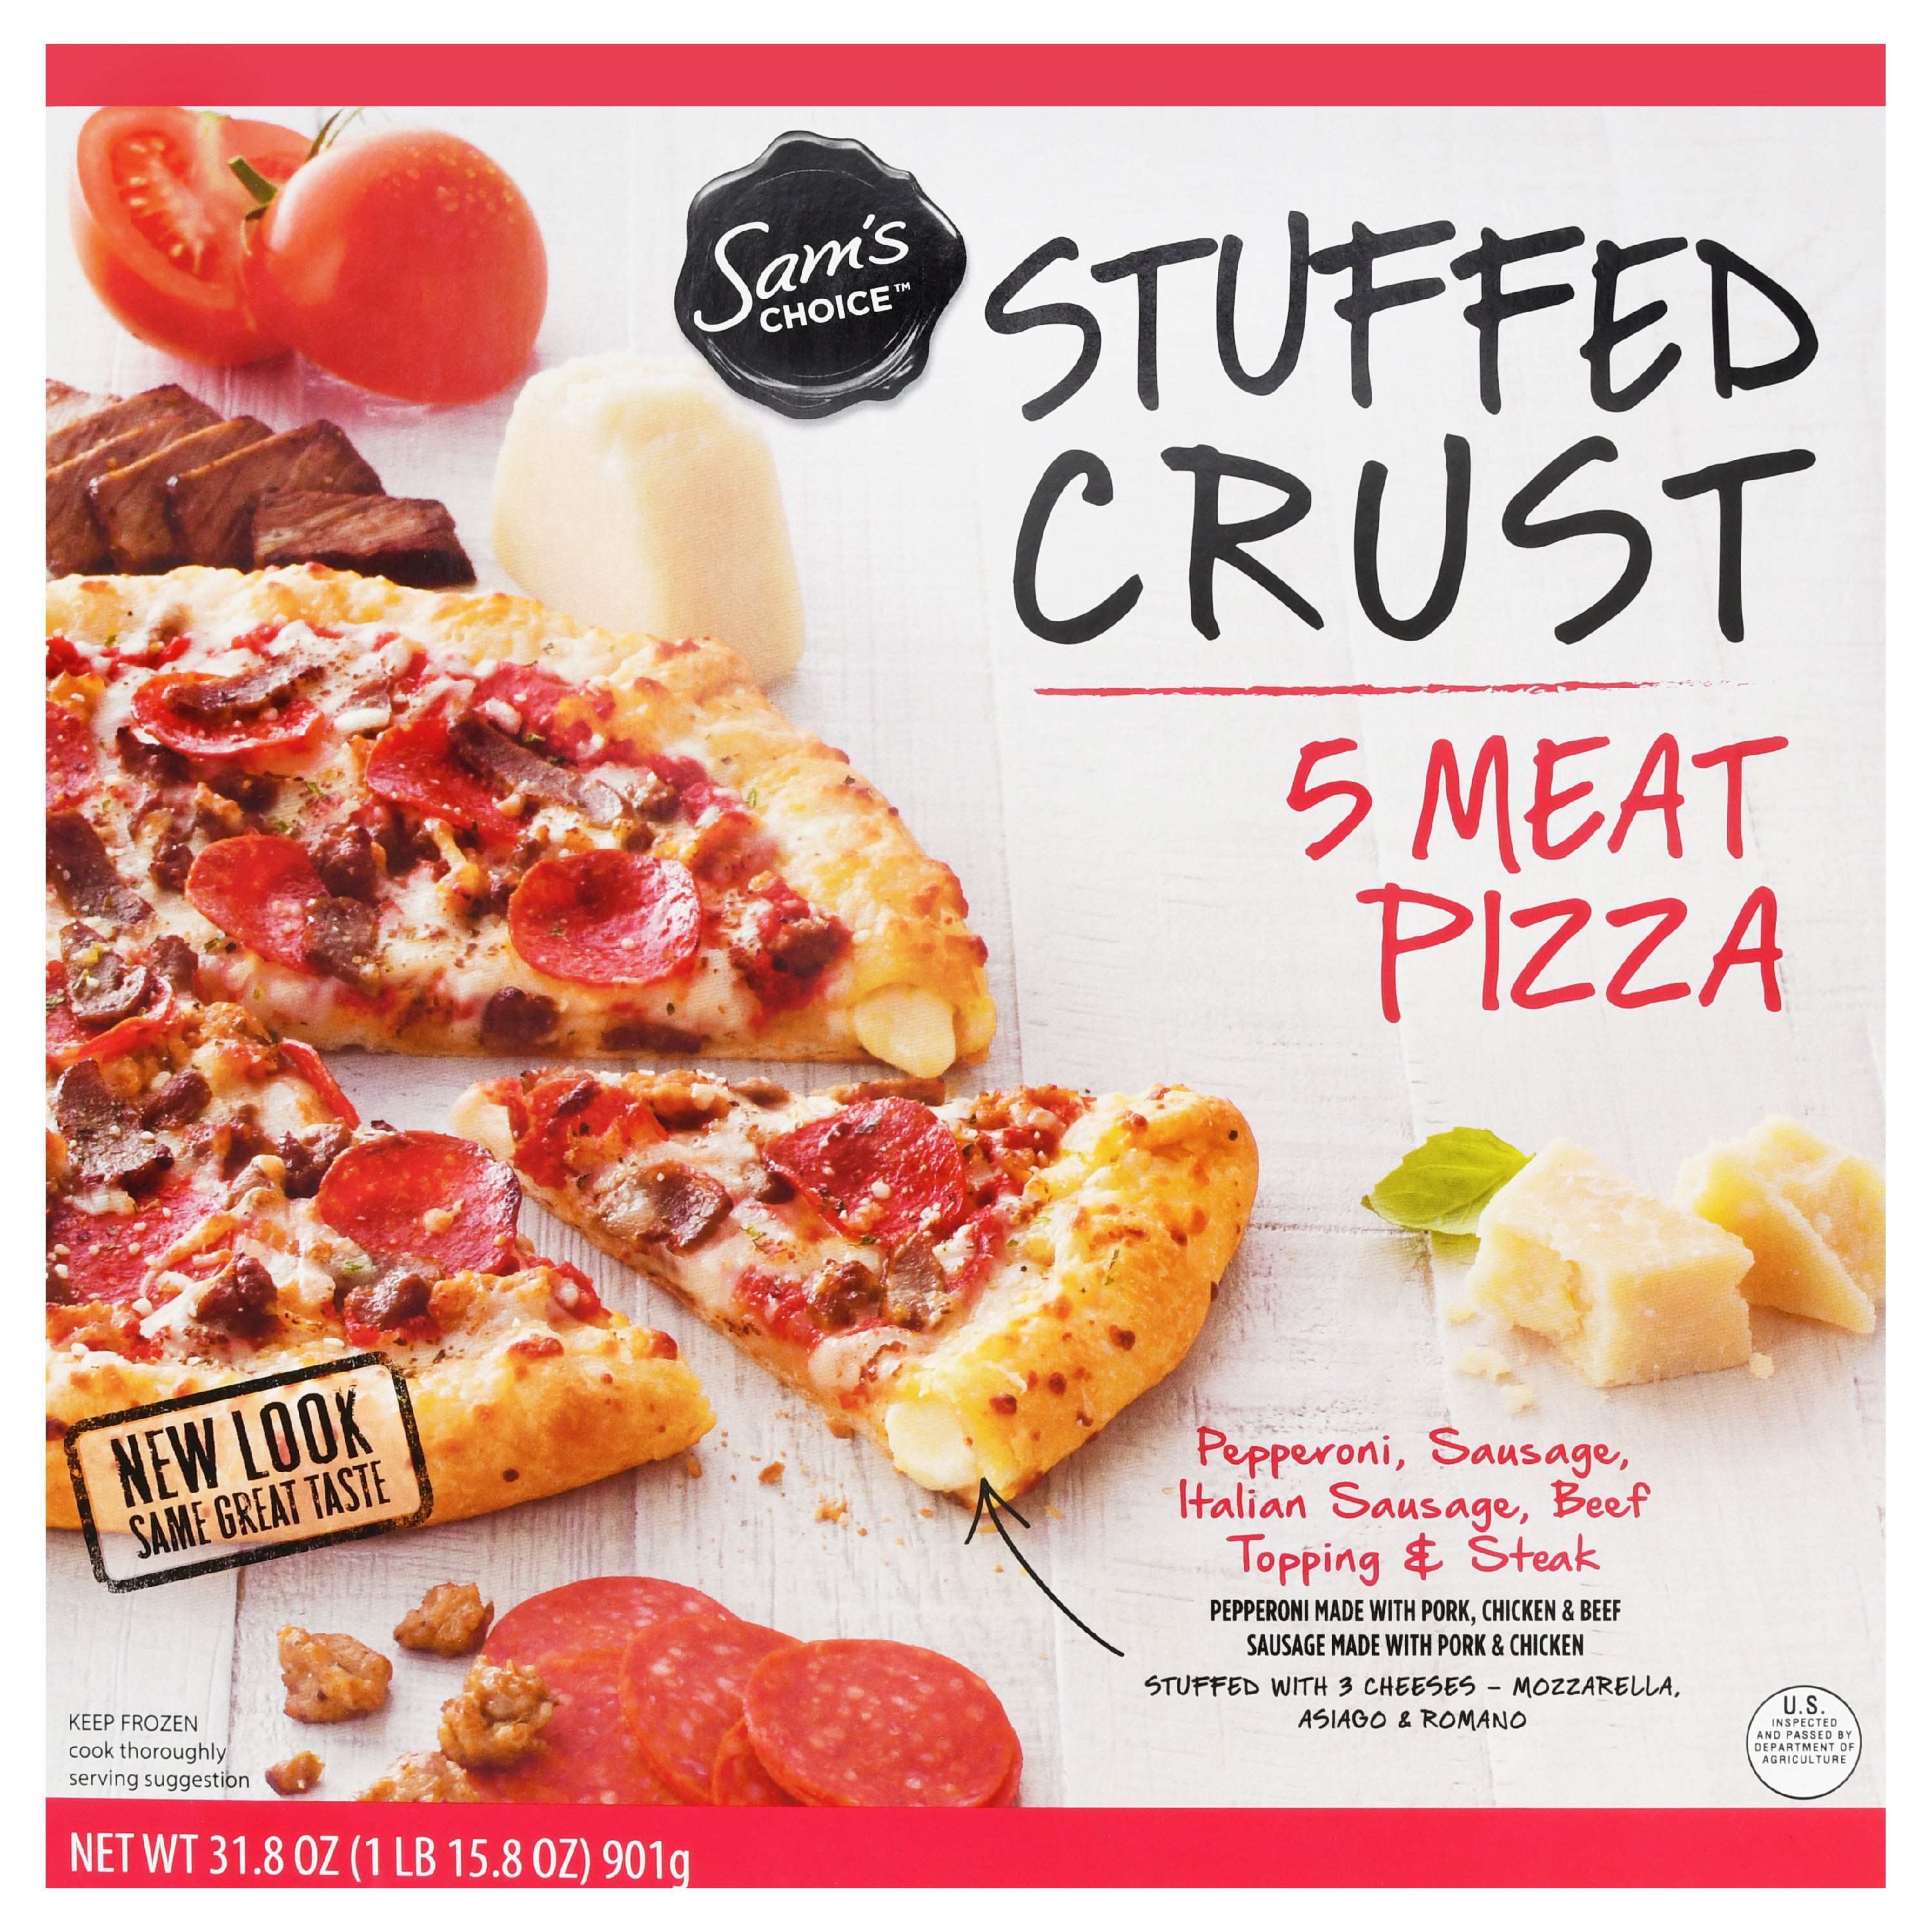 Sam's Choice Frozen Stuffed Crust 5 Meat Pizza, 31.8 oz